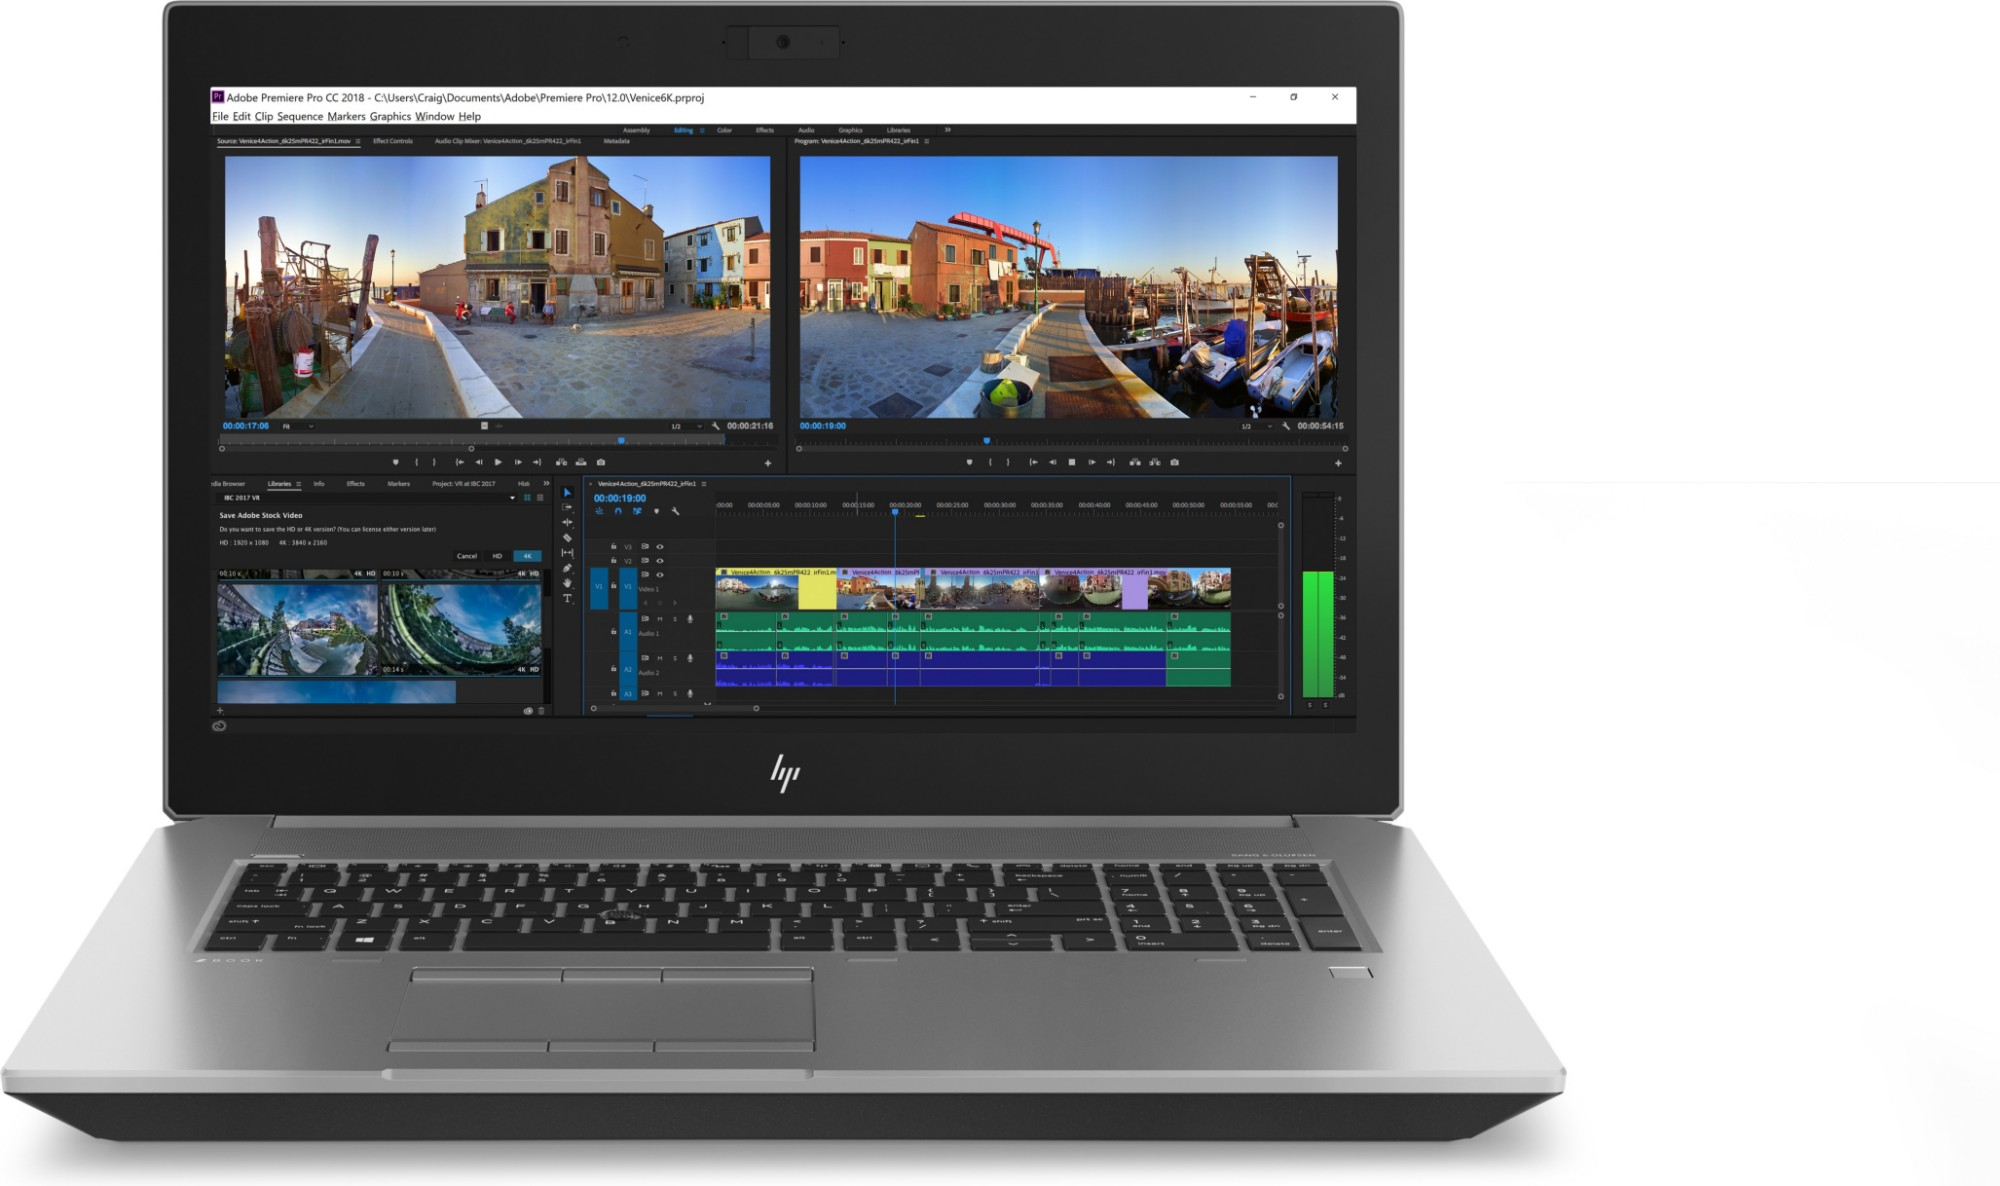 hp zbook 17 g3 driver package